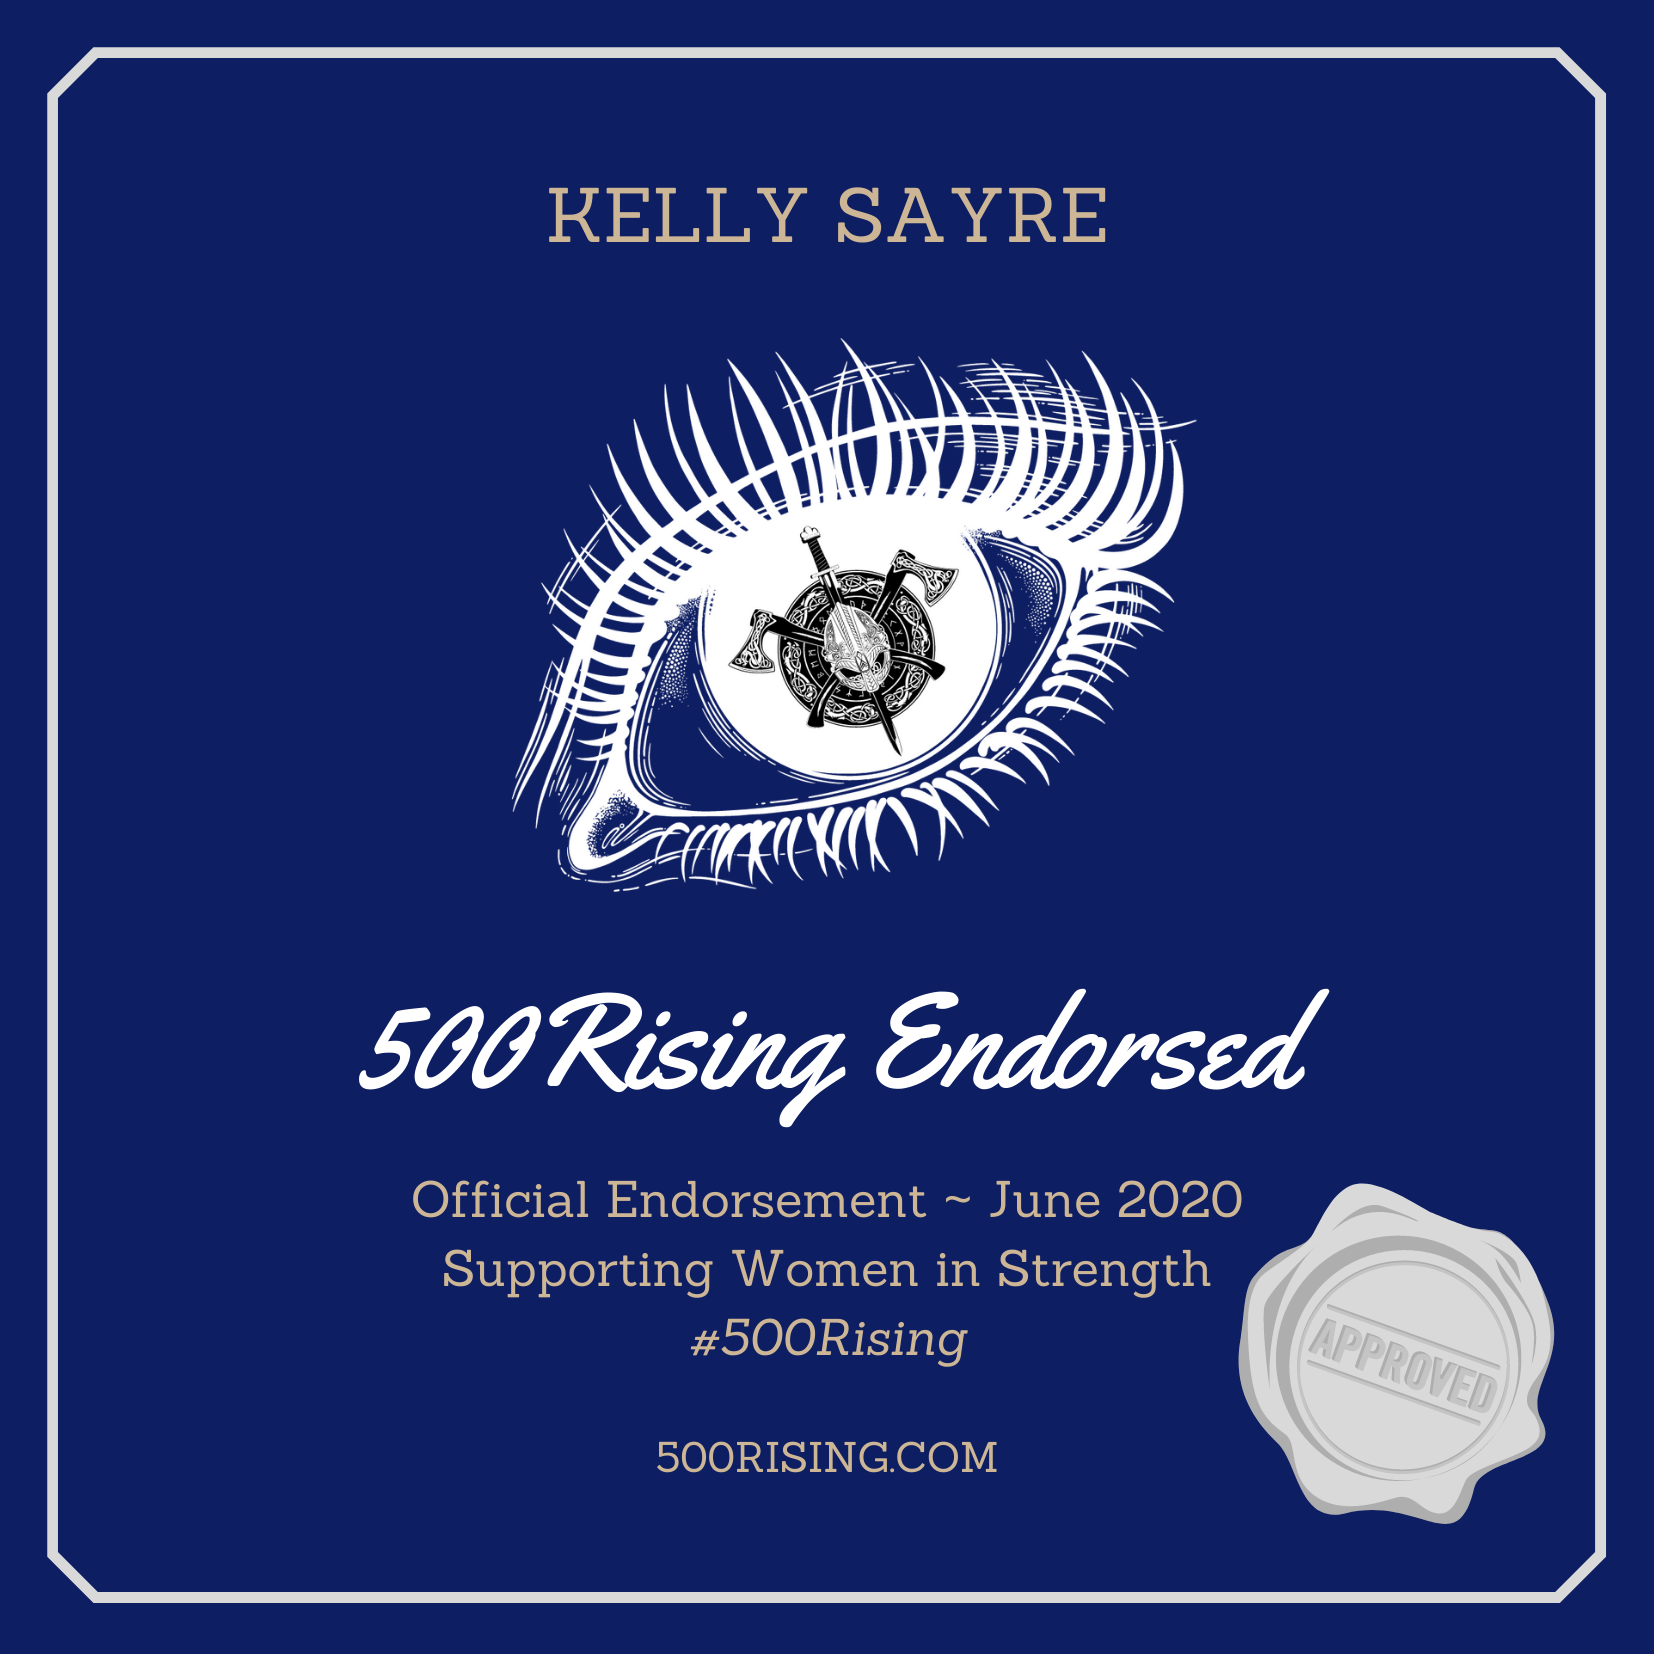 500 Rising endorsement seal for Kelly Sayre